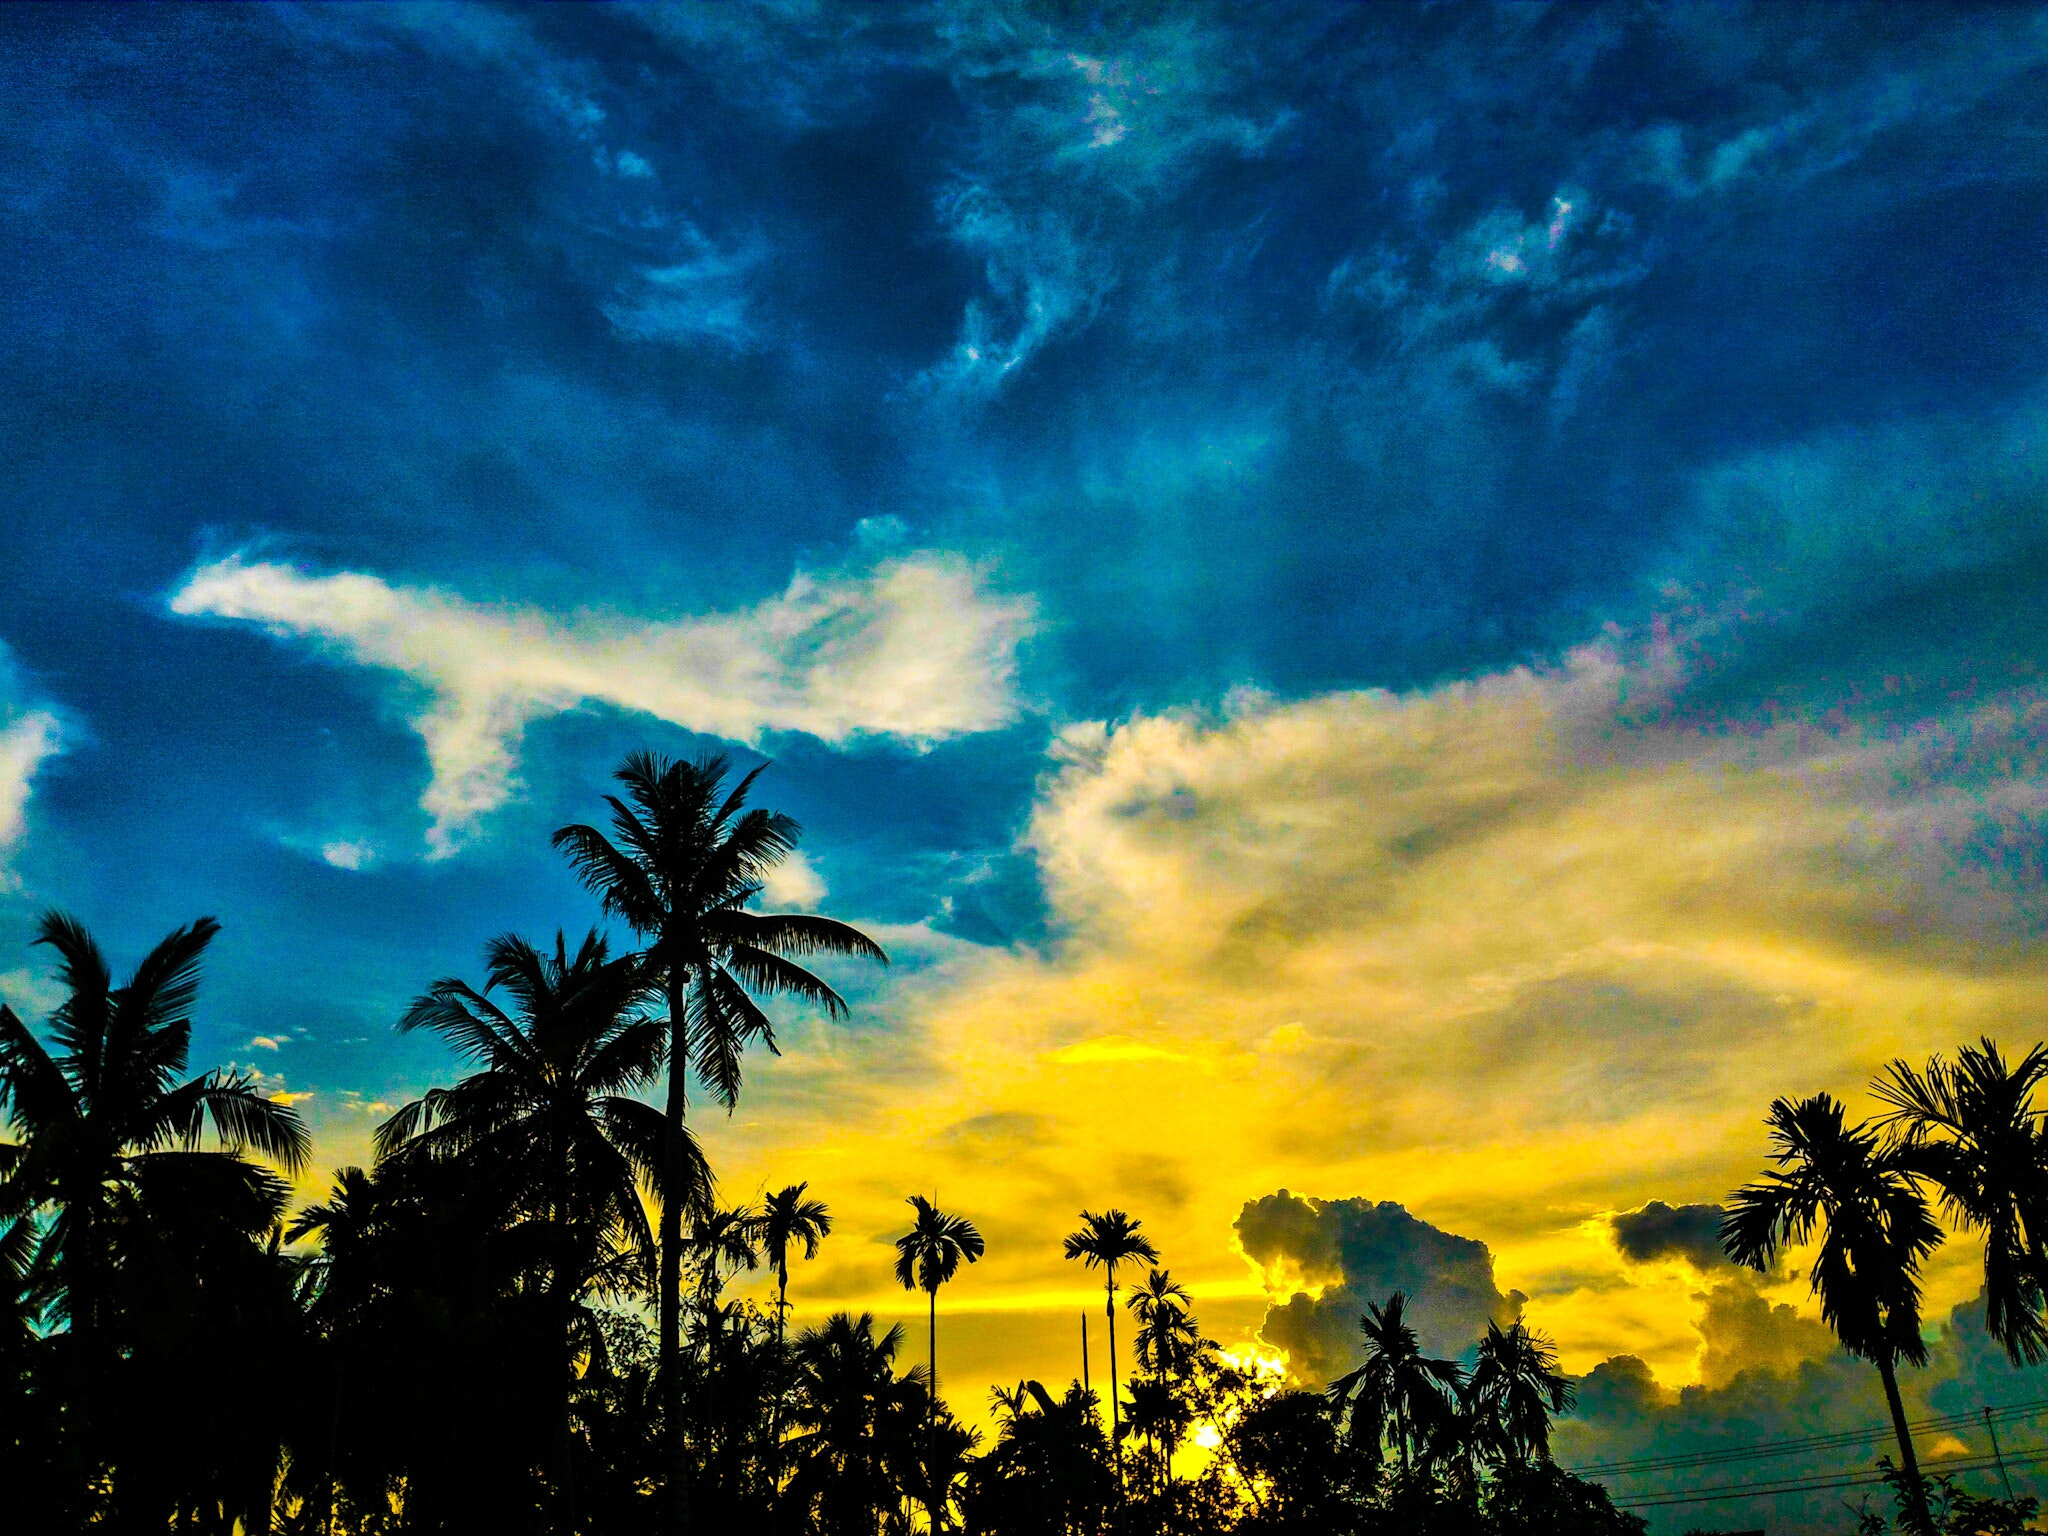 silhouette of palm trees under blue and yellow sky free stock photo